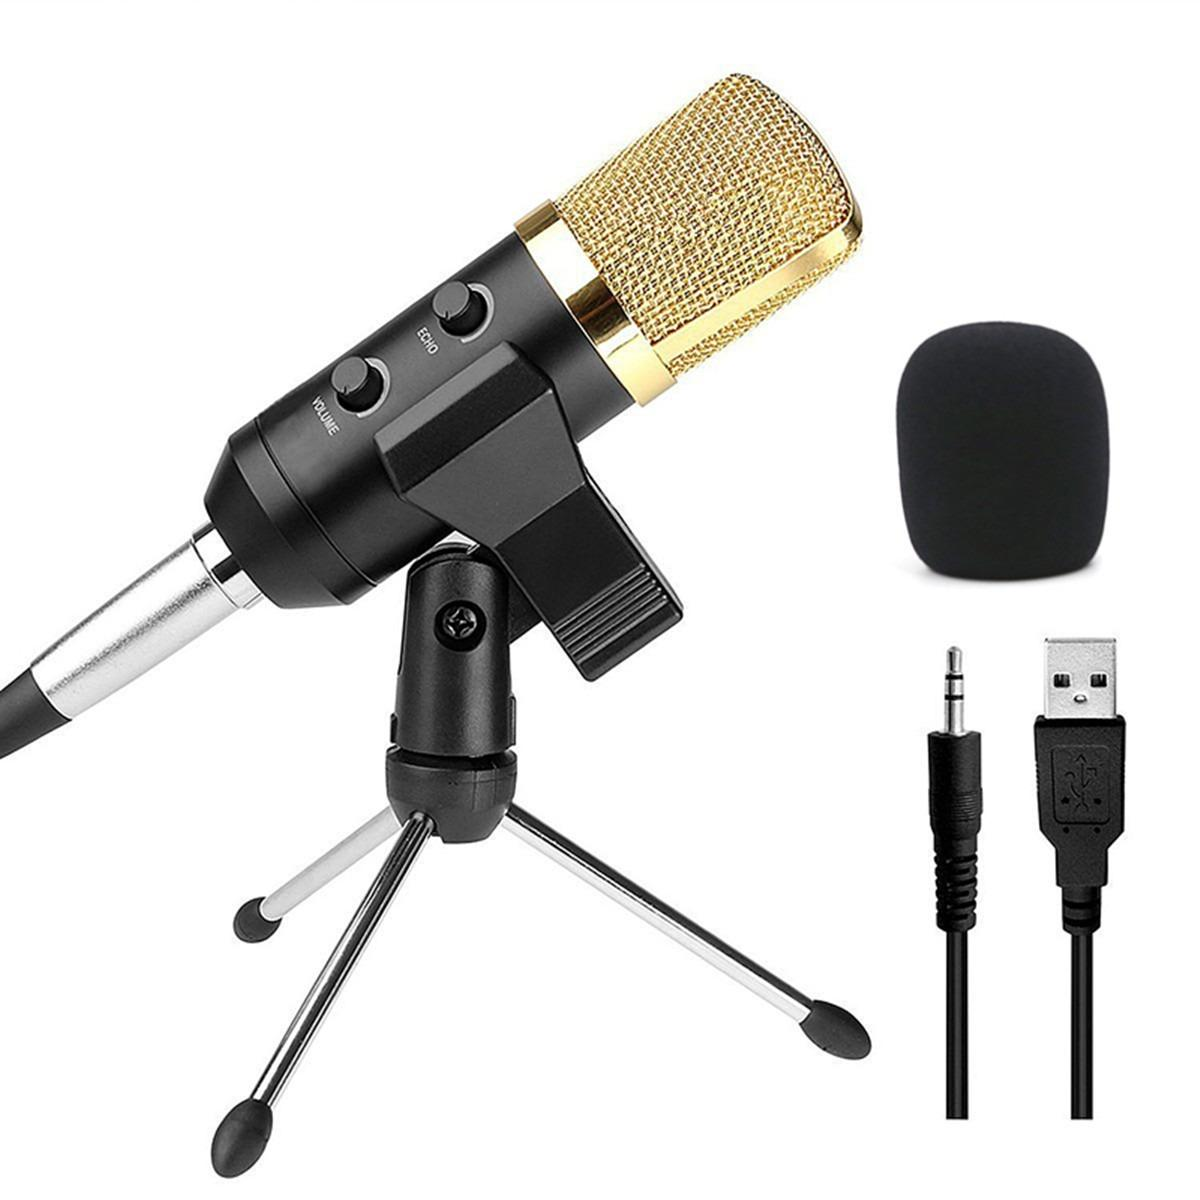 Jual Audio Usb Kondensor Sound Studio Recording Vokal Mikrofon Dengan Stand Mount New Black Internasional Online Indonesia